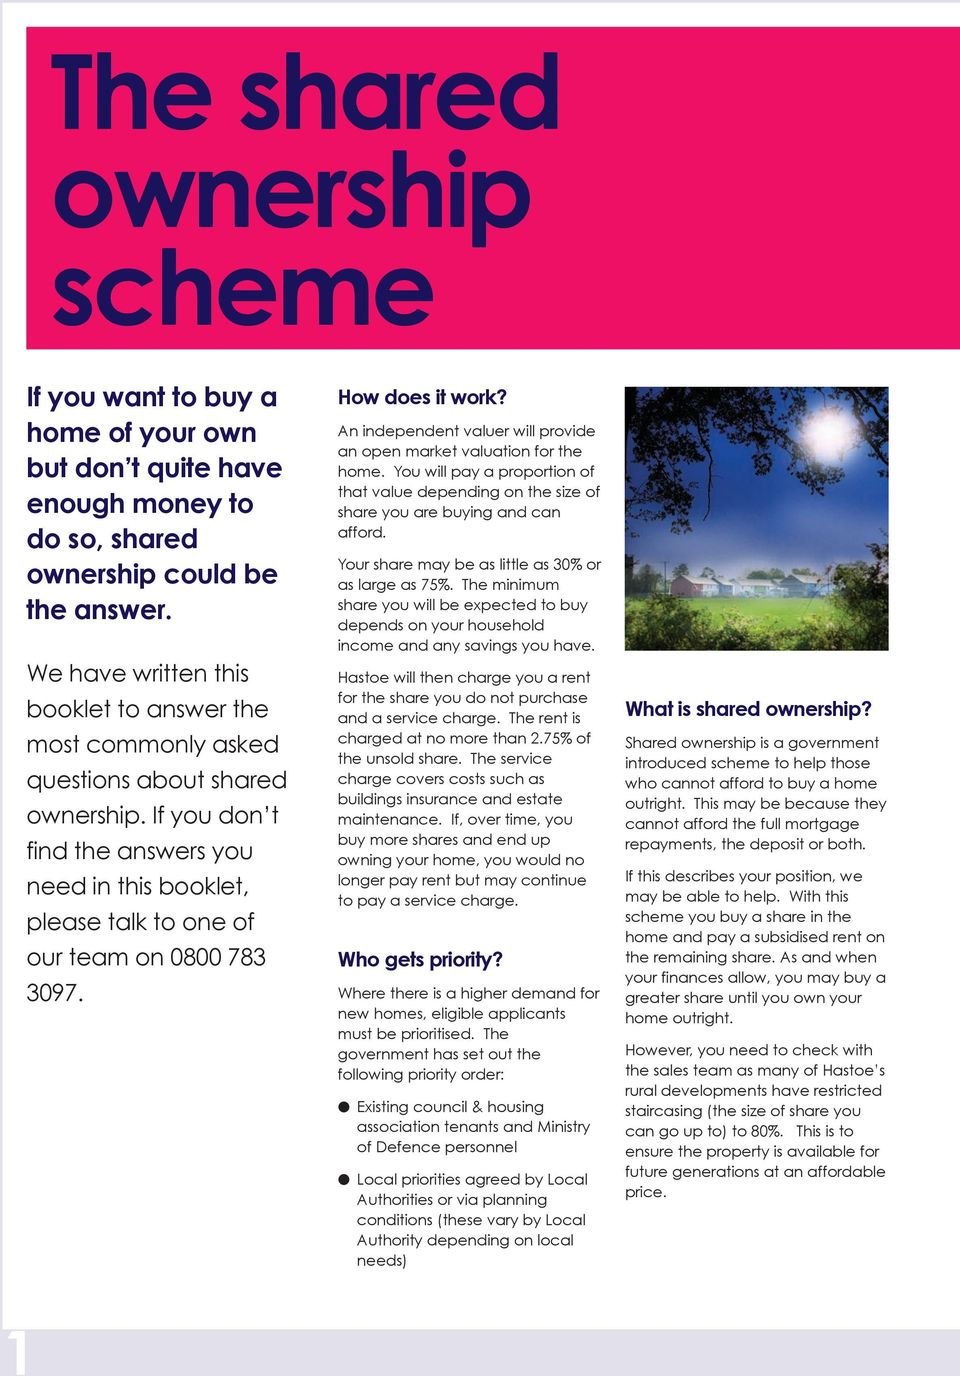 If you don t find the answers you need in this booklet, please talk to one of our team on 0800 783 3097. How does it work? An independent valuer will provide an open market valuation for the home.